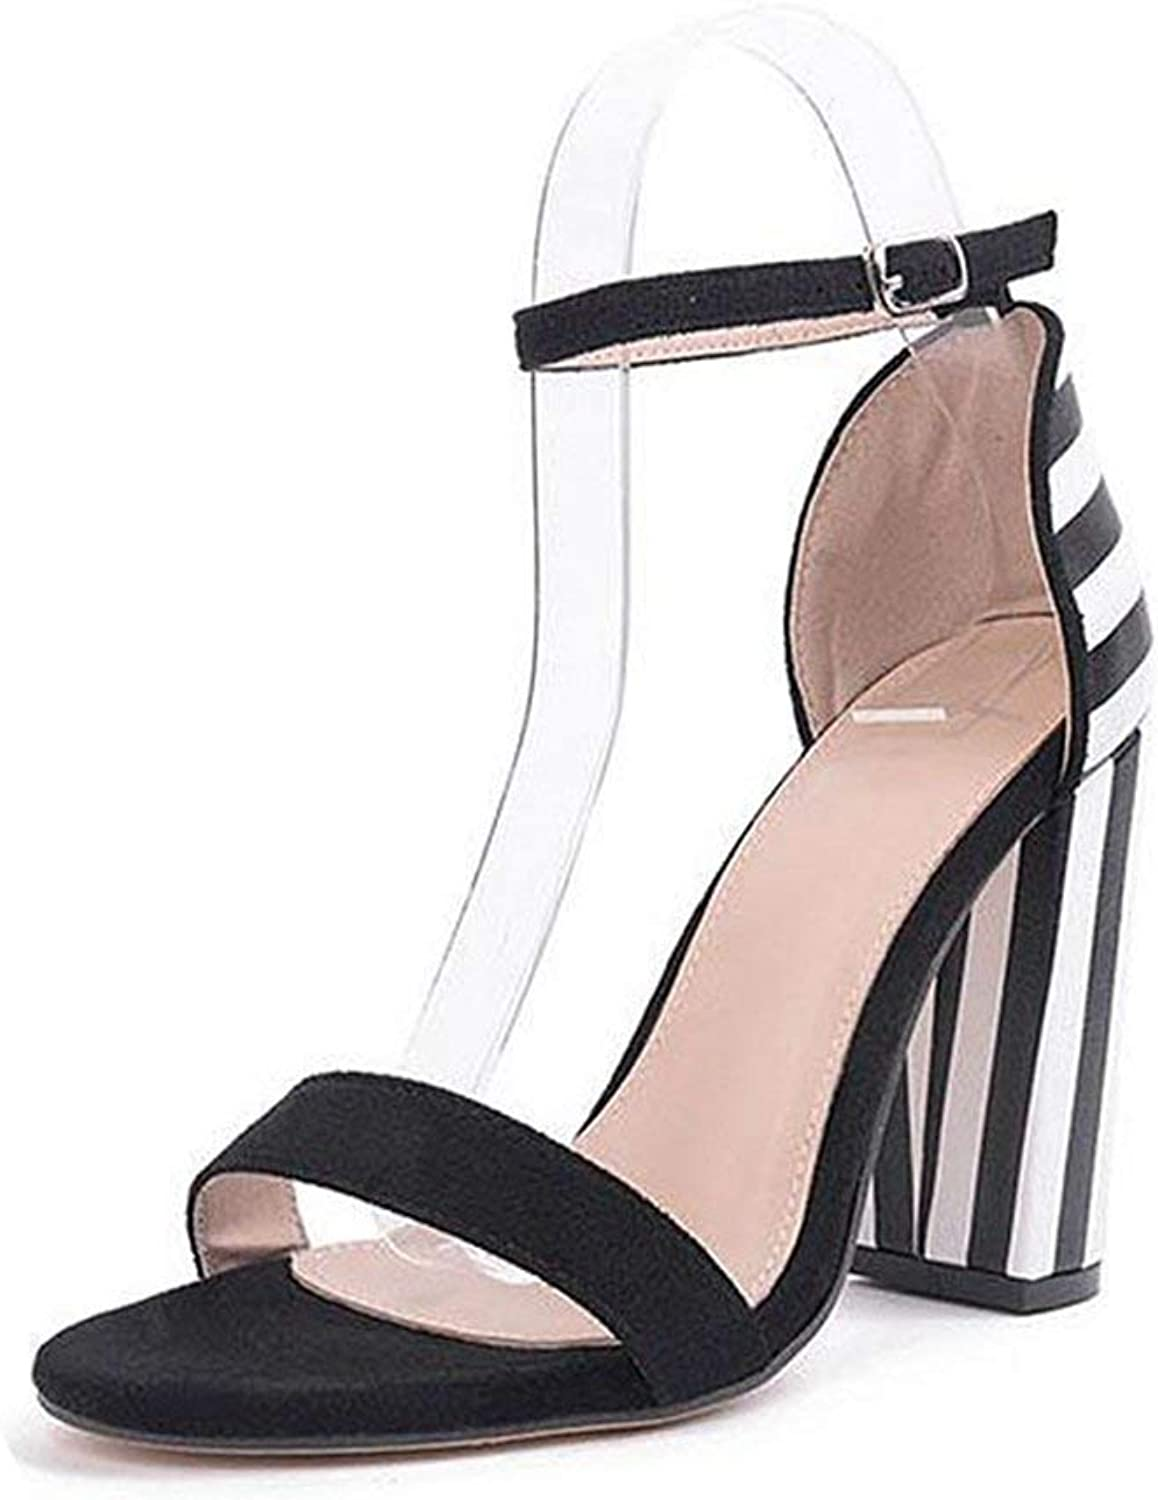 Fashion shoesbox Women's Strappy Chunky Block High Heel Snadals Wedding Party Simple Classic Pump Heeled shoes